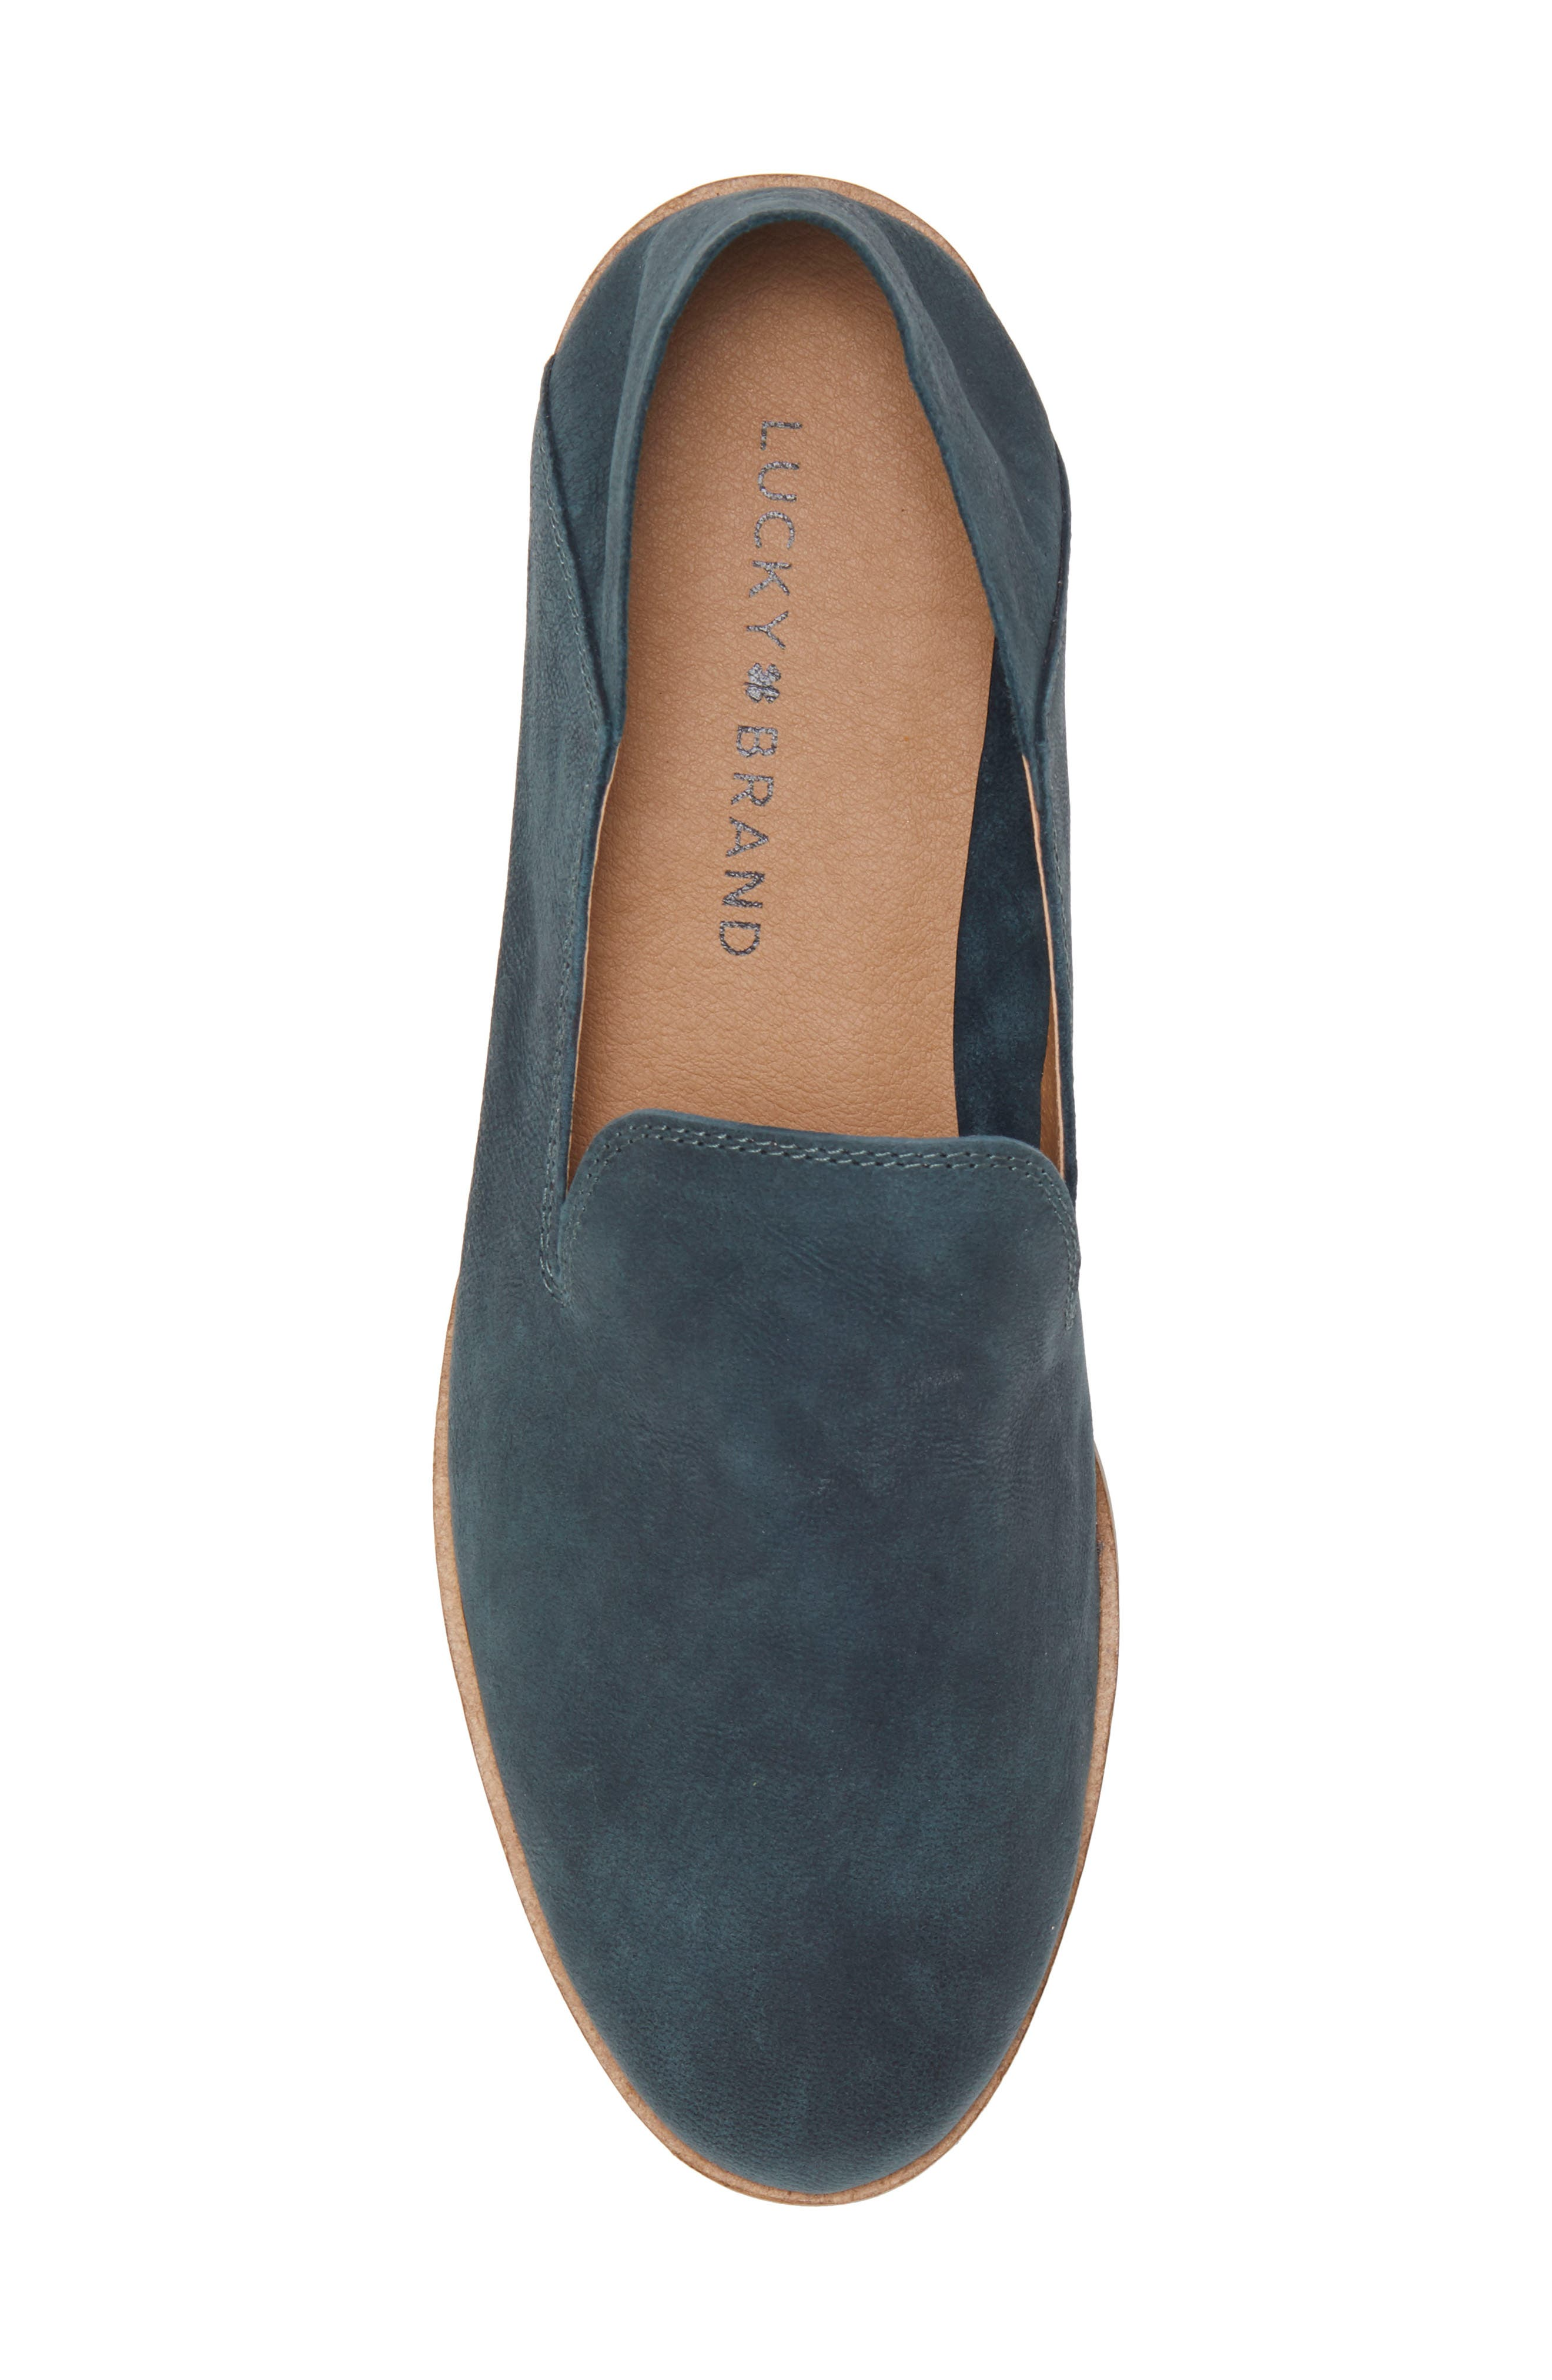 LUCKY BRAND, Cahill Flat, Alternate thumbnail 6, color, KELP LEATHER